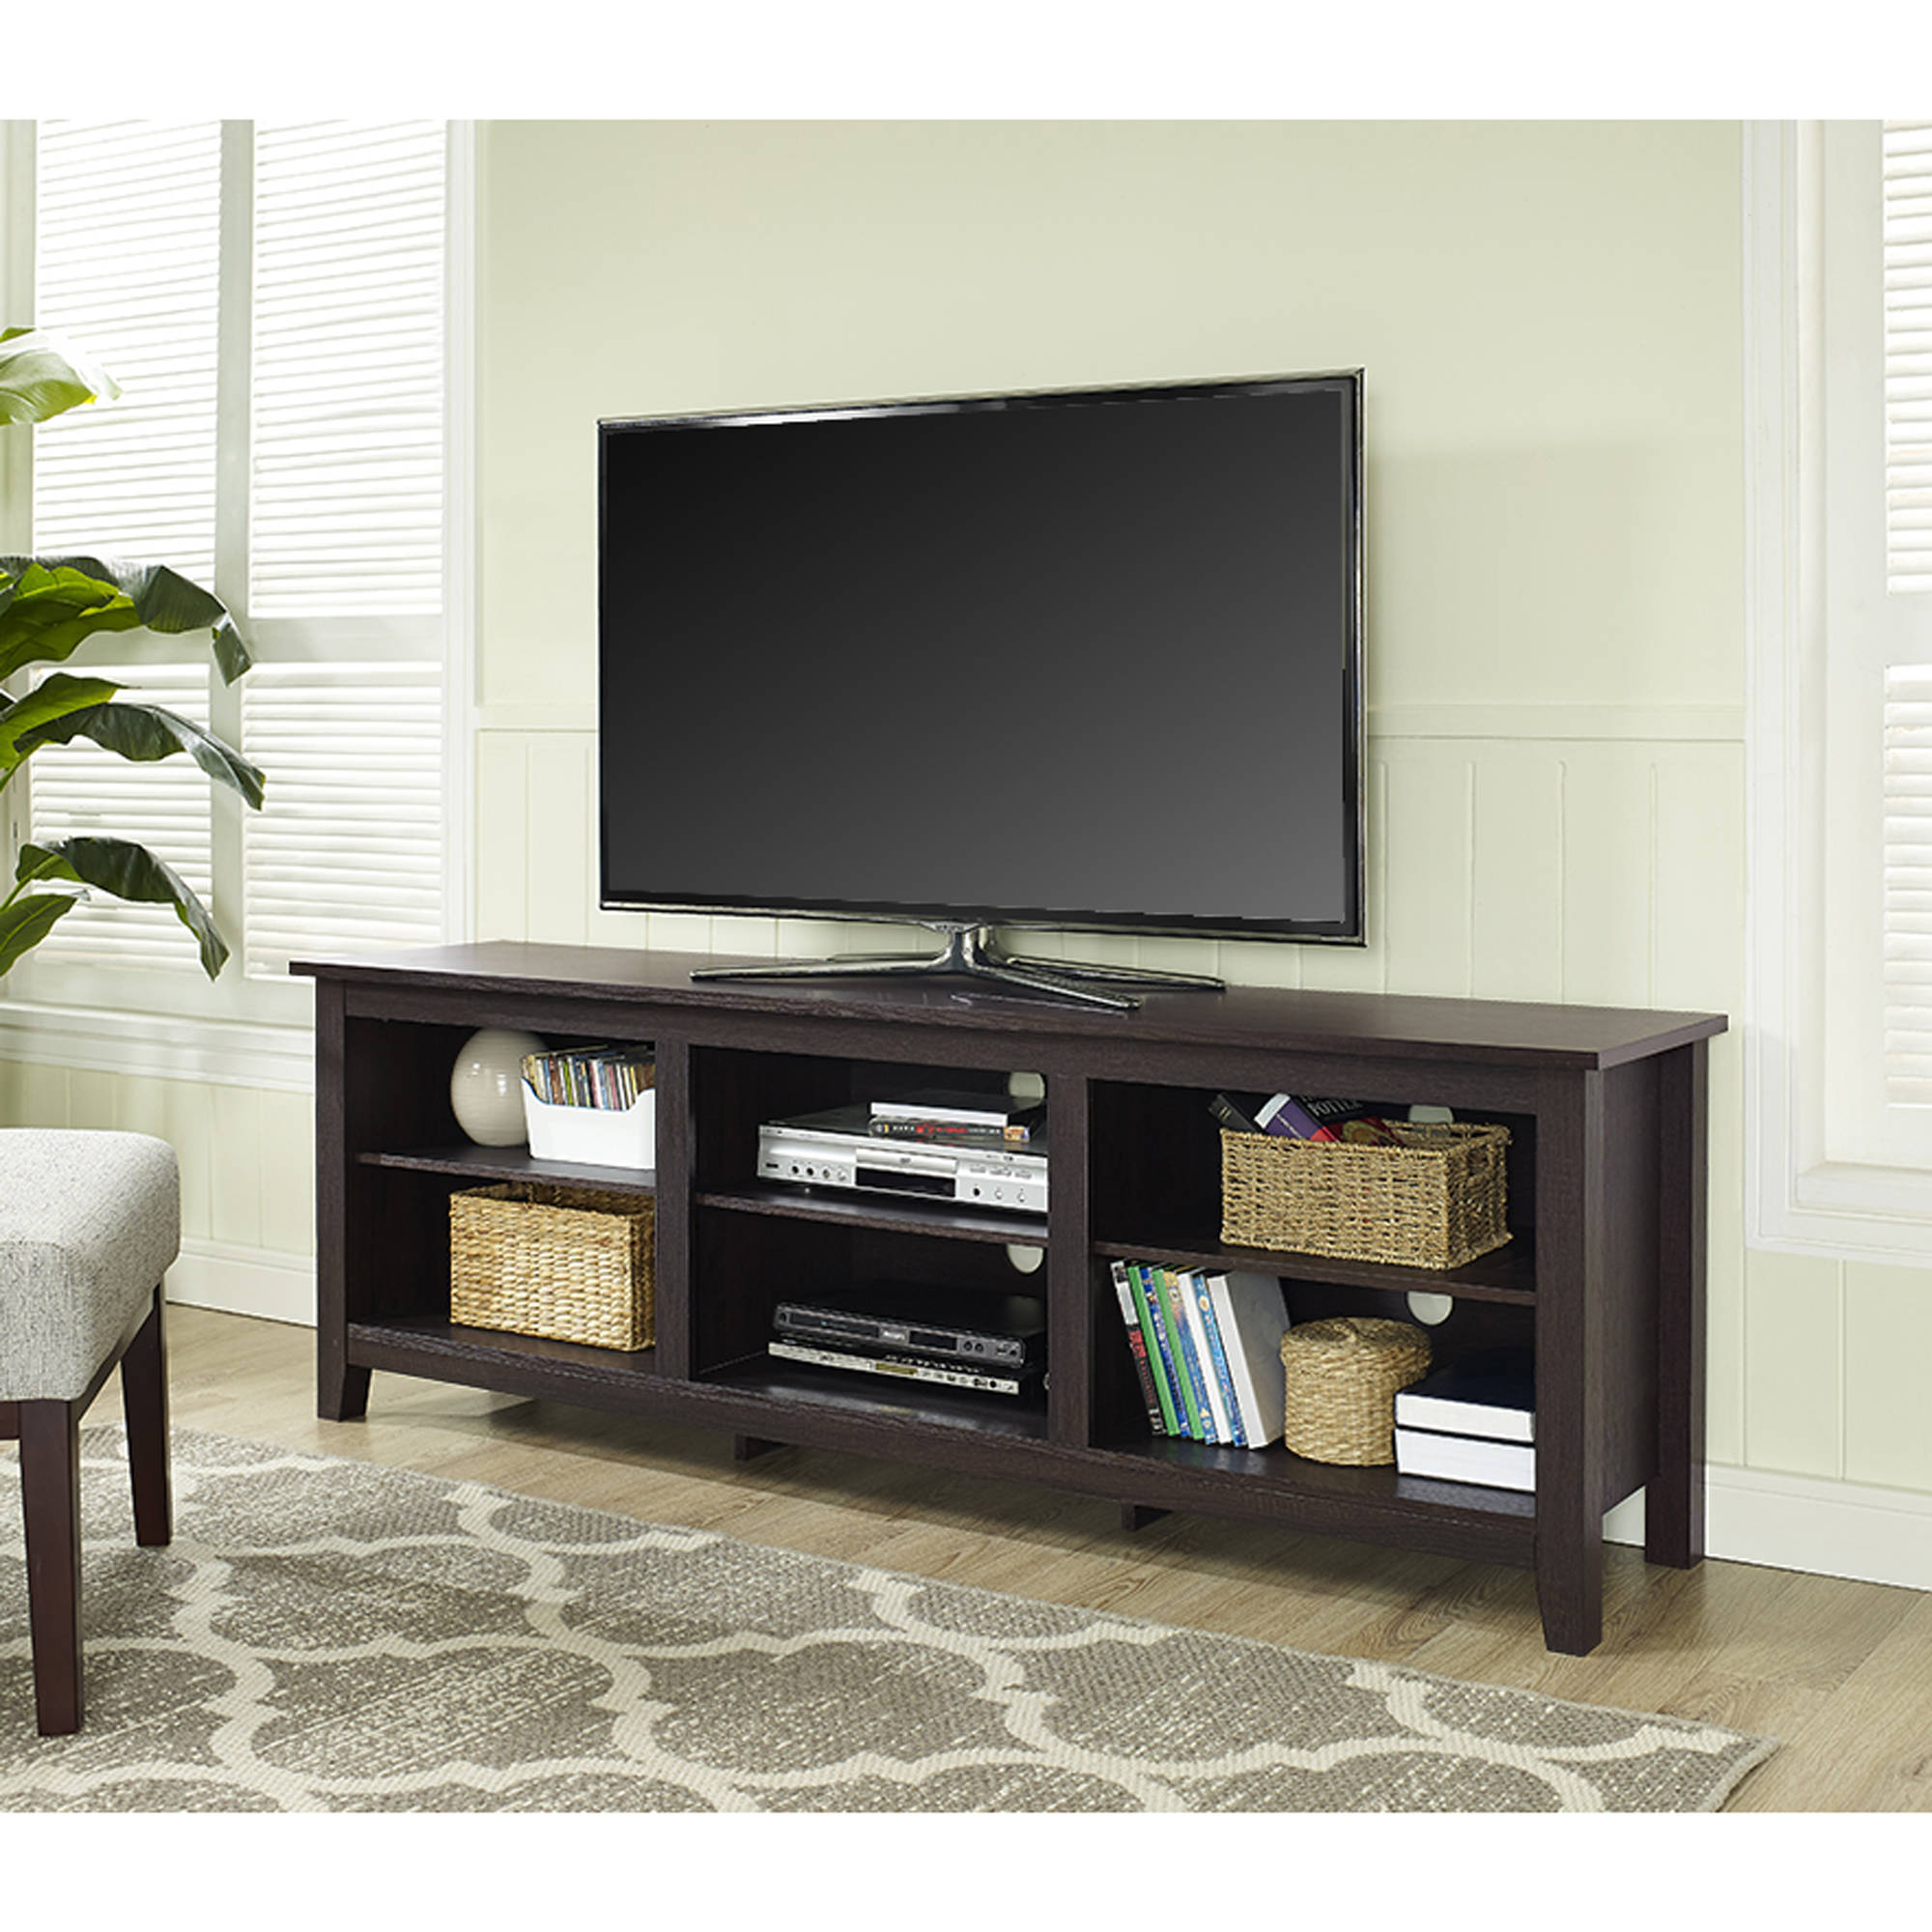 Room Wood Shelf Entertainment Target Designs Murah Simple Unit Stand With Regard To Lauderdale 74 Inch Tv Stands (View 7 of 30)